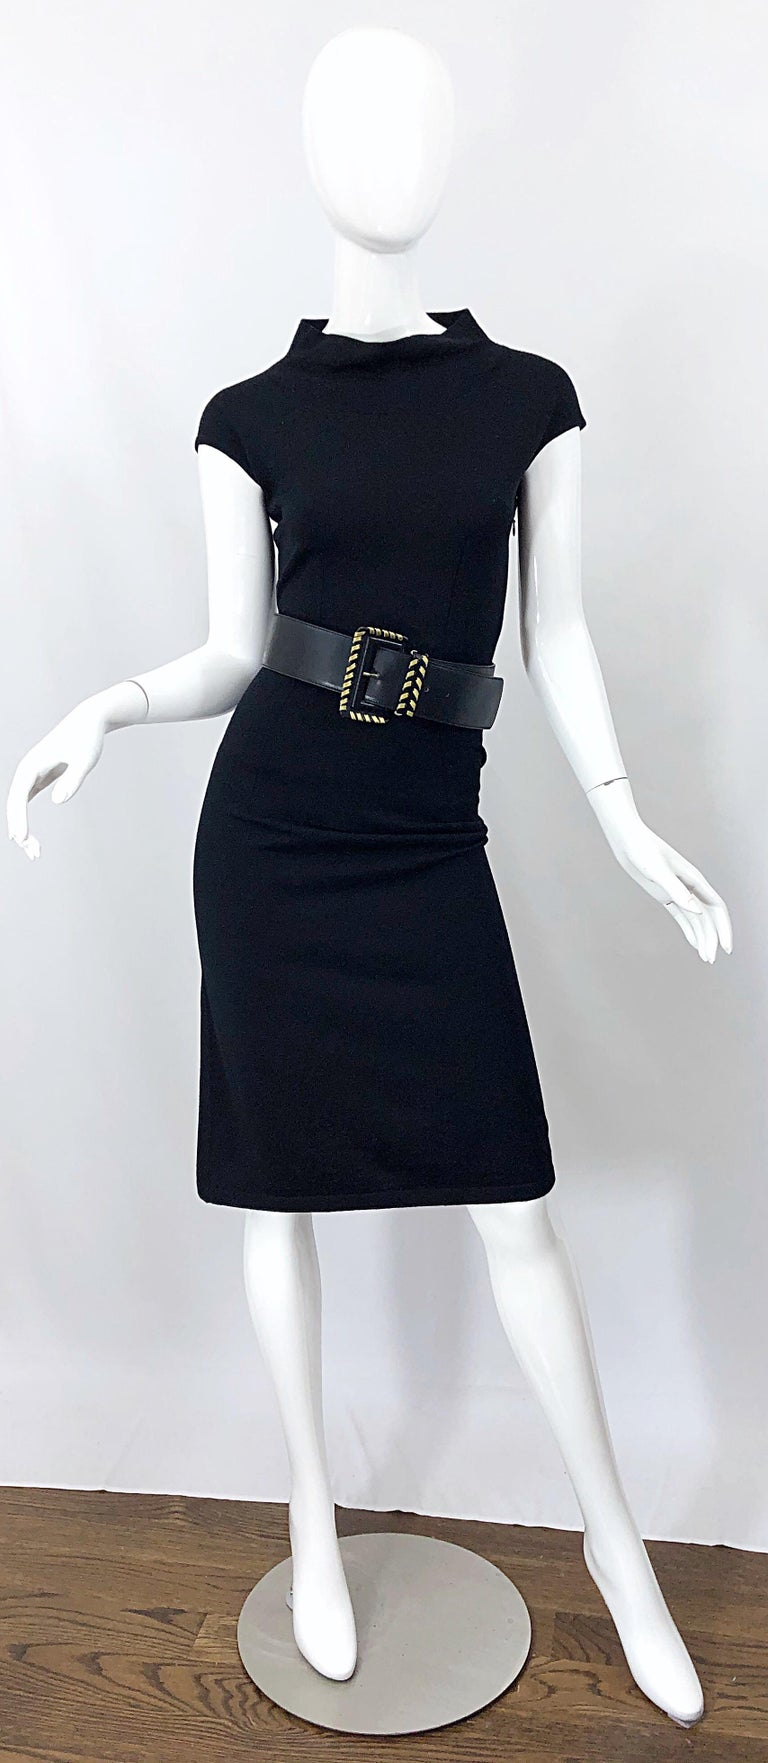 Vintage Azzedine Alaia 1980s Black Lightweight Wool Cap Sleeve Bodycon 80s Dress For Sale 9